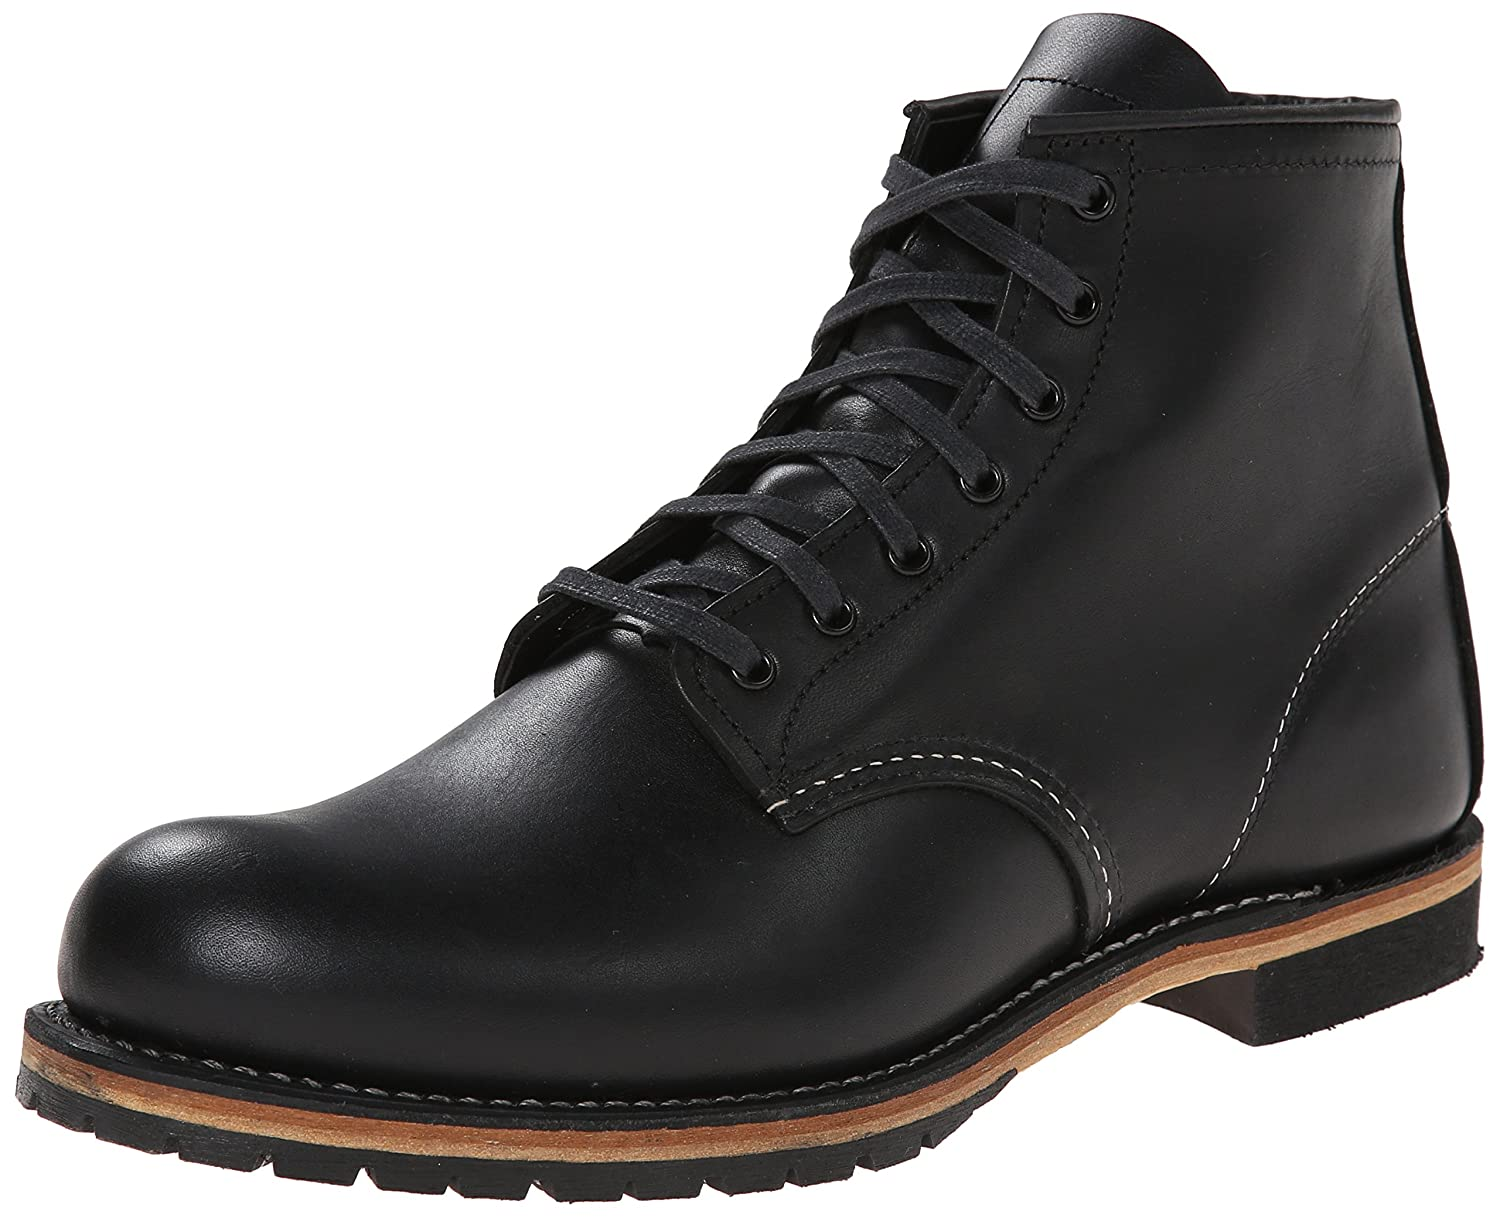 Victorian Men's Shoes & Boots- Lace Up, Spats, Chelsea, Riding Red Wing Heritage Mens Beckman Round 6 Boot $397.89 AT vintagedancer.com